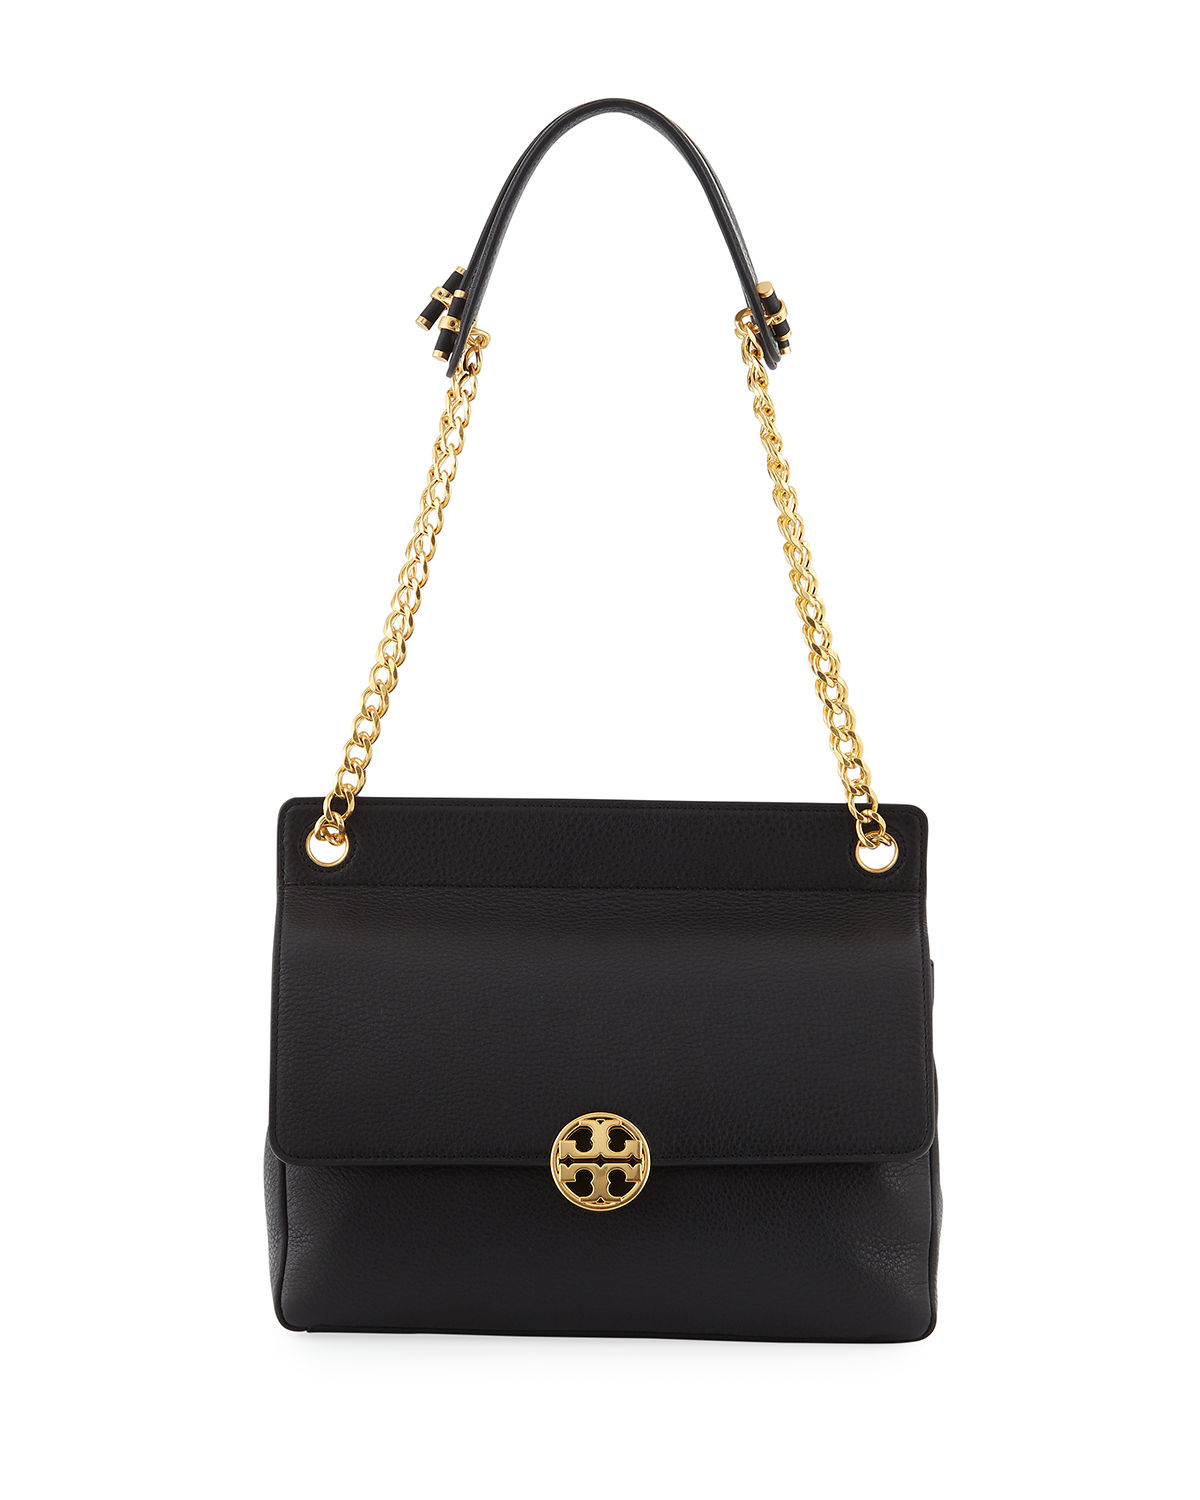 8c48fd3aefa Tory Burch Chelsea Flap Shoulder Bag